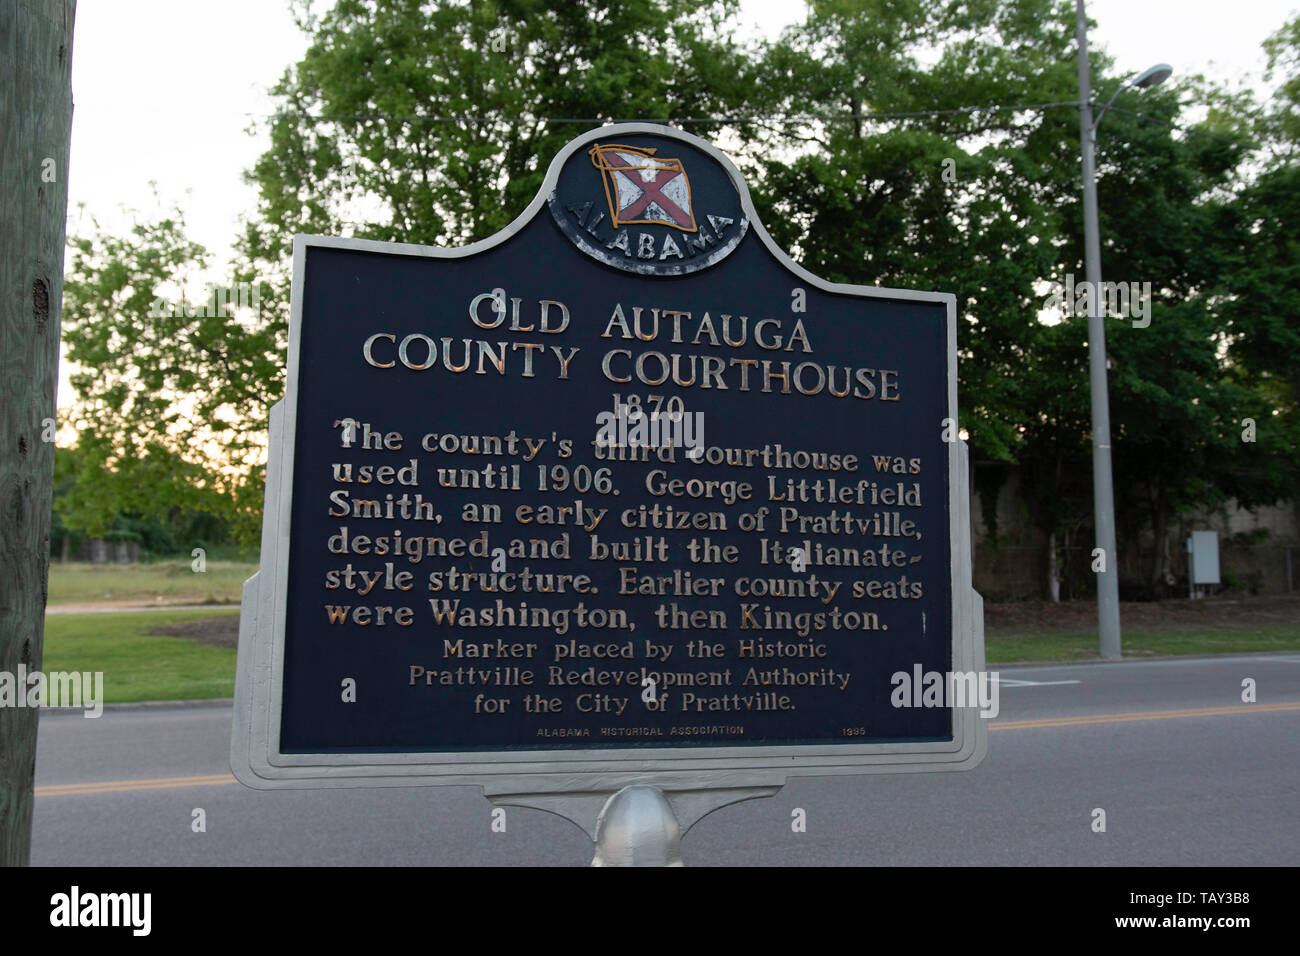 Prattville, Alabama/USA-May 2, 2019: Historical marker for